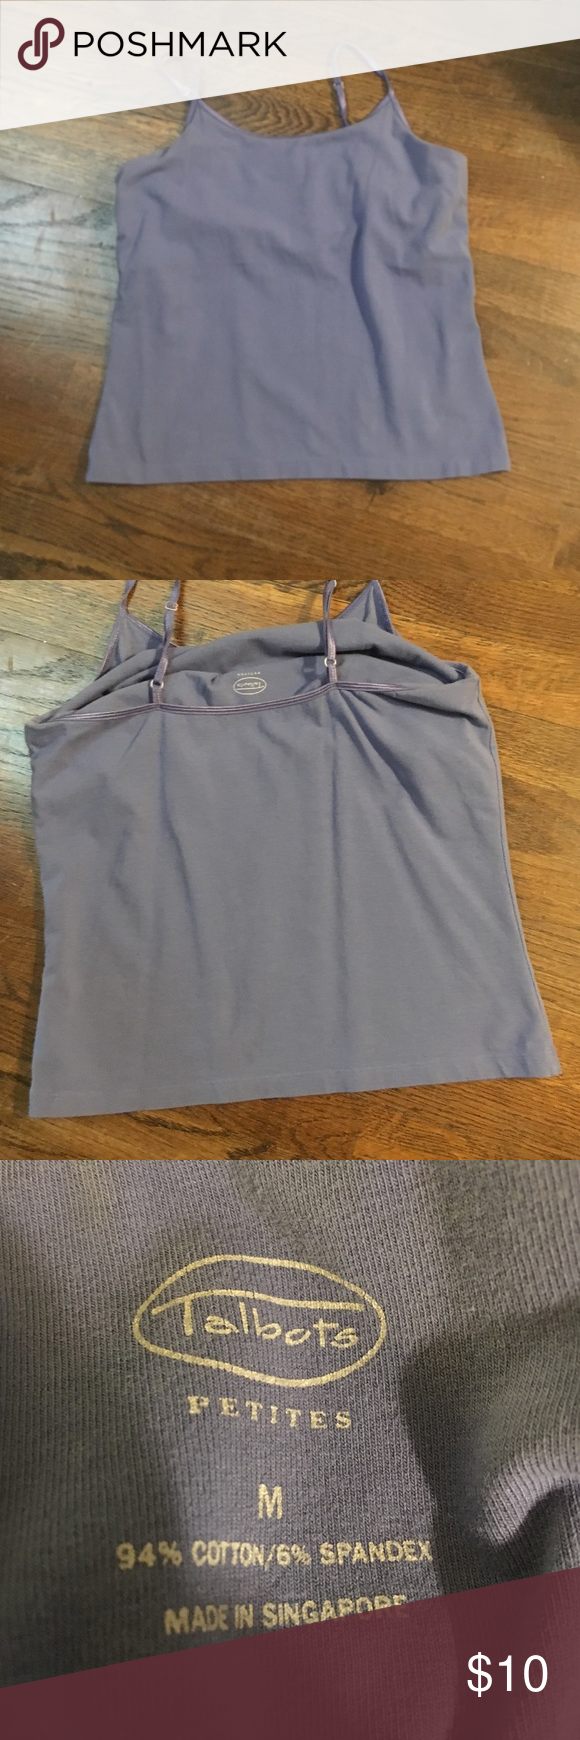 Talbots lilac cami Talbots cami in lilac. Has adjustable straps and shelf bra. In great condition. Talbots Tops Camisoles